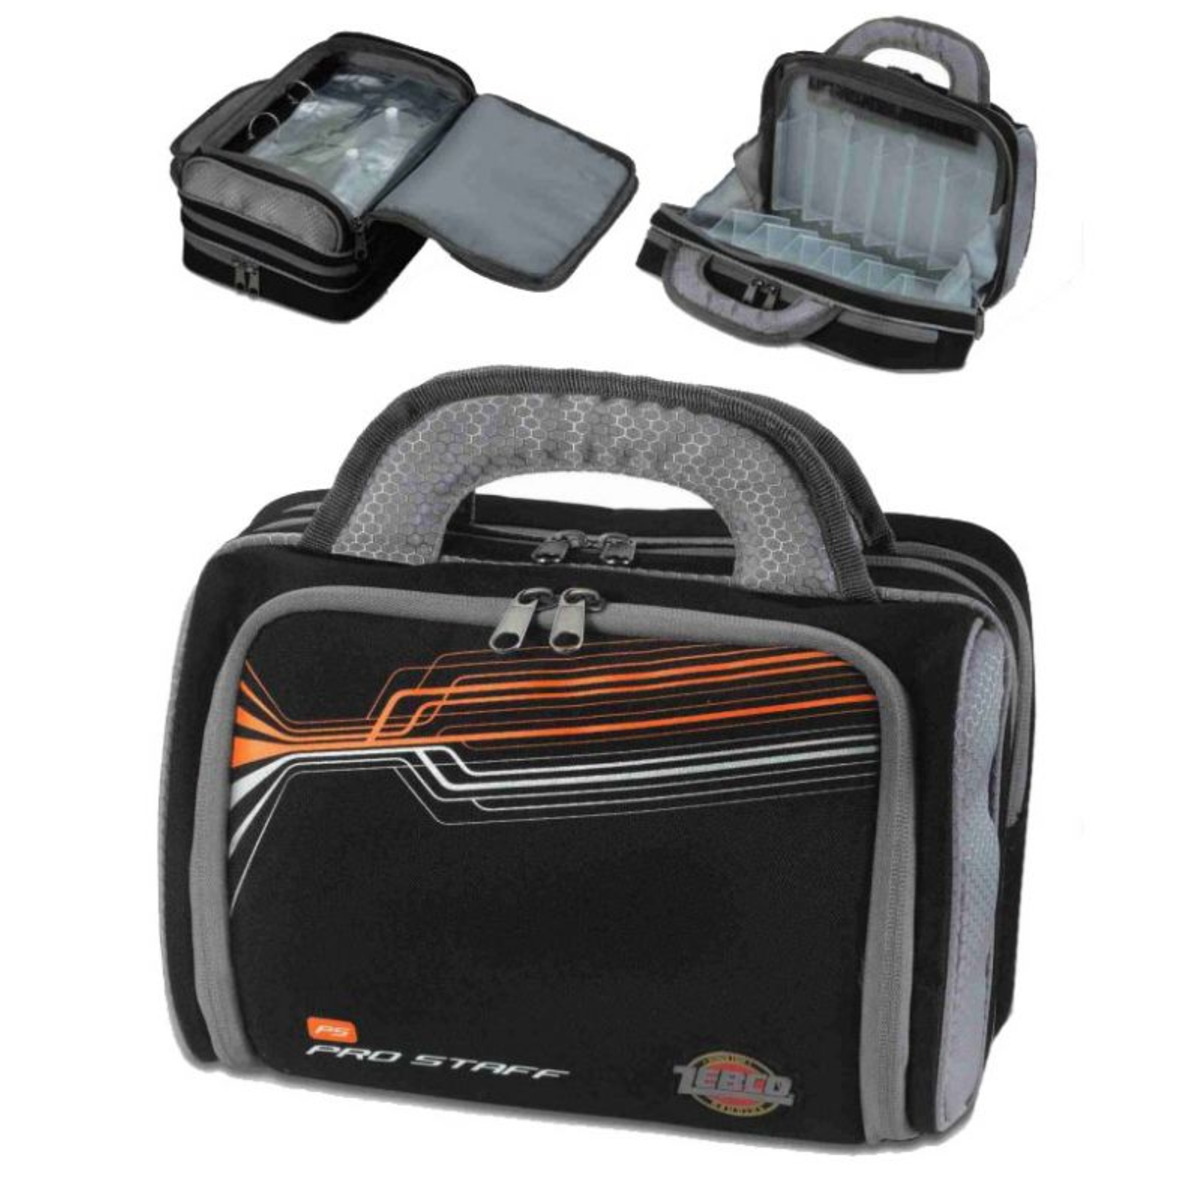 Zebco Pro Staff Rig and Lure Bag - 30x16x20 cm